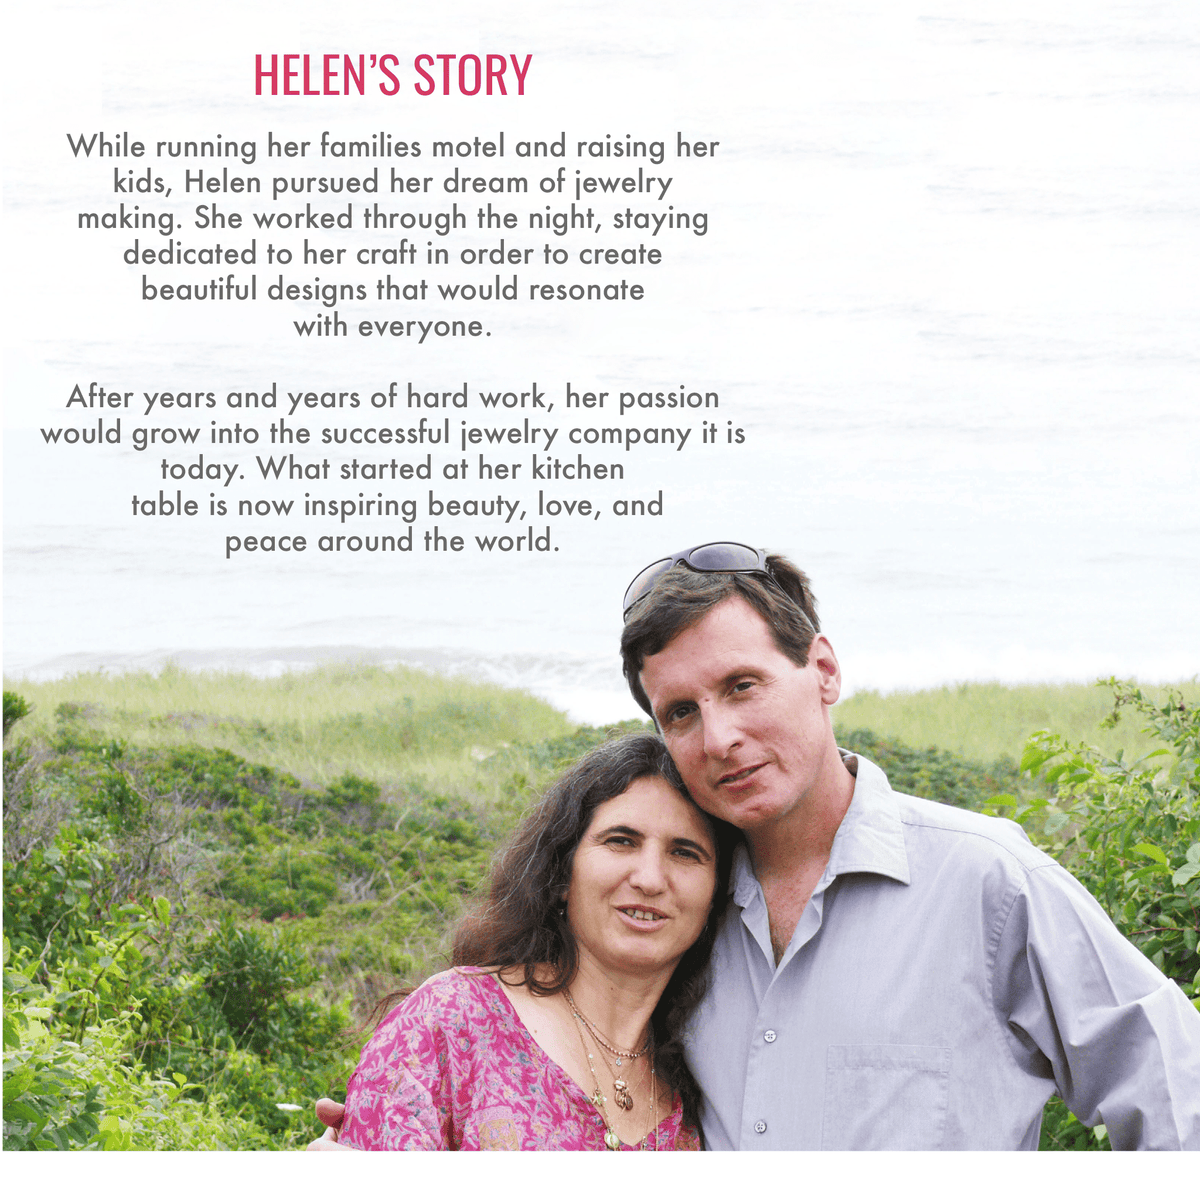 Helen's story. While running her family's motel and raising her kids, Helen pursued her dream of jewelry making. She worked through the night, staying dedicated to her craft in order to create beautiful designs that would resonate with everyone. After years and years of hard work, her passion would grow into the successful jewelry company it is today. What started at her kitchen table is now inspiring beauty, love, and peace around the world.